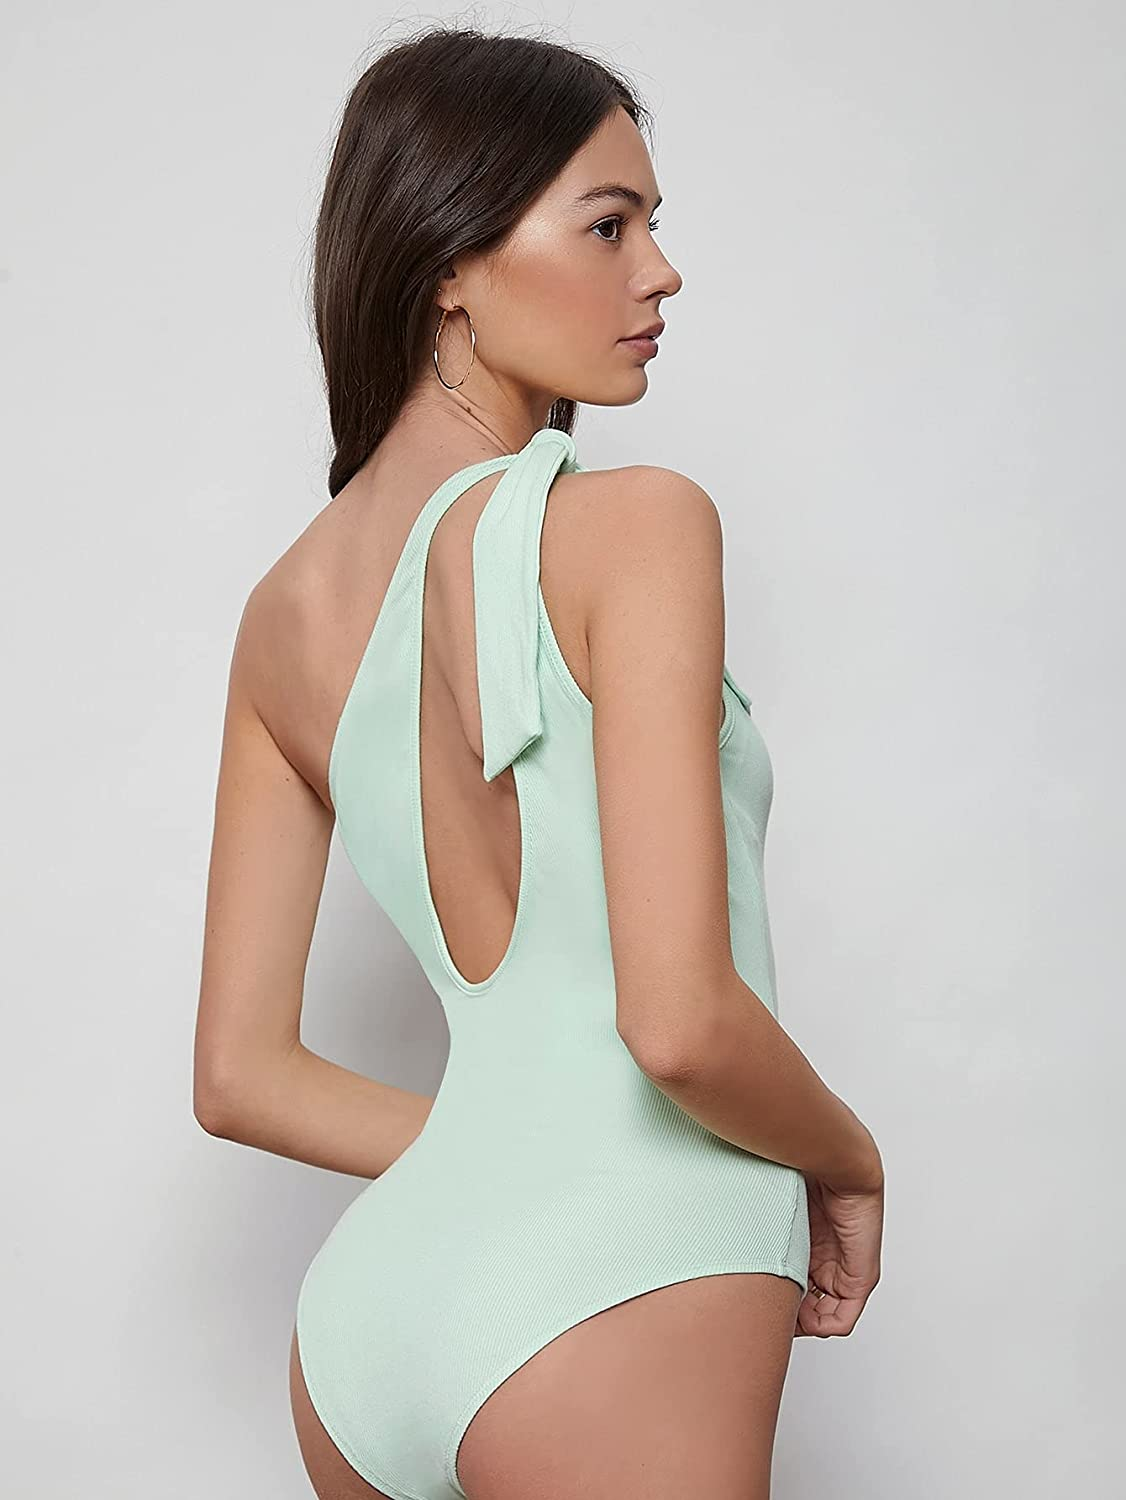 Milumia Women Knotted One Shoulder Sleeveless Bodysuit Top Asymmetrical Cut Out Leotard